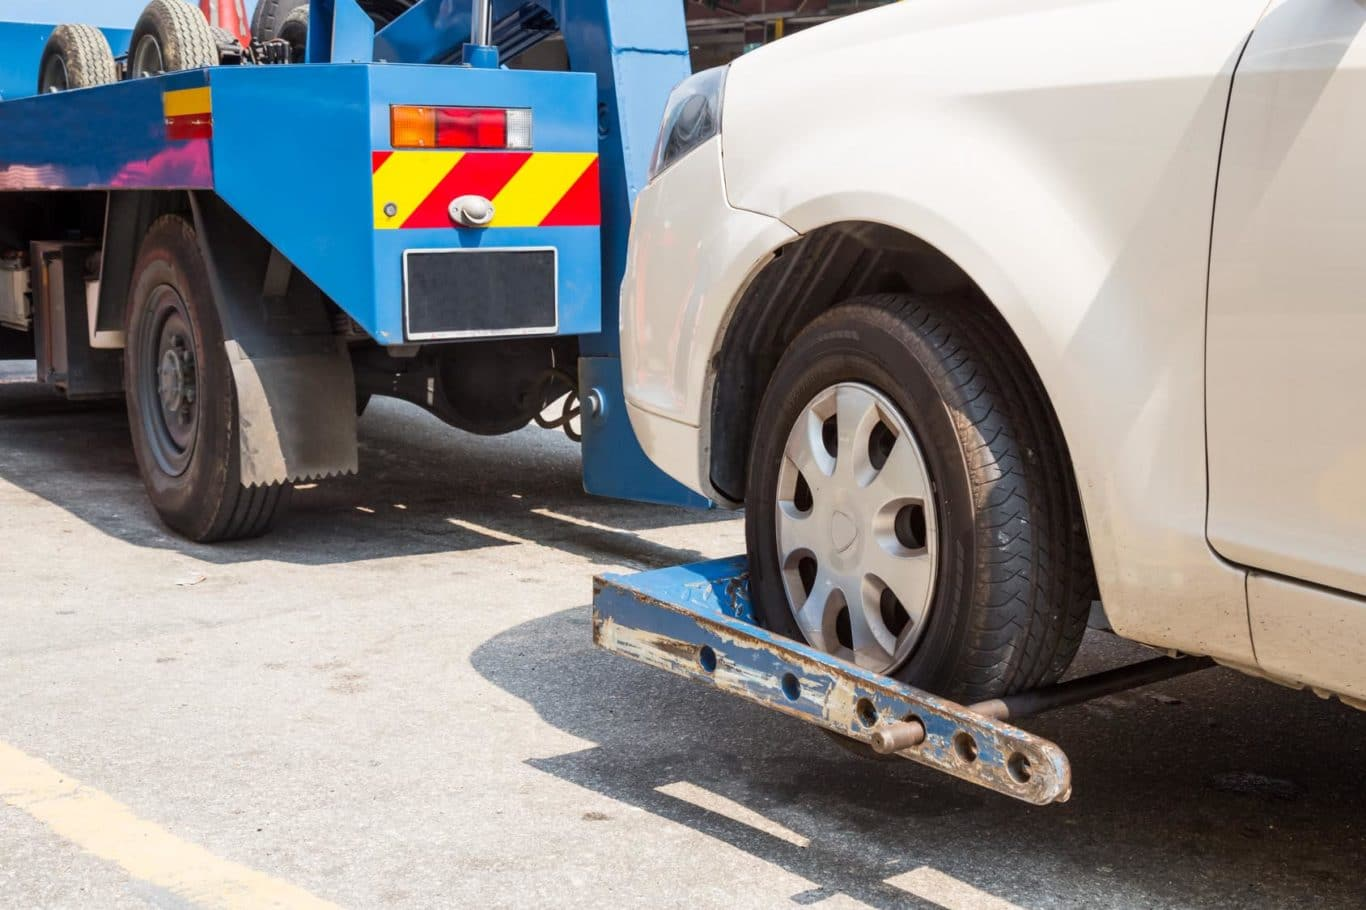 Leixlip expert Towing services